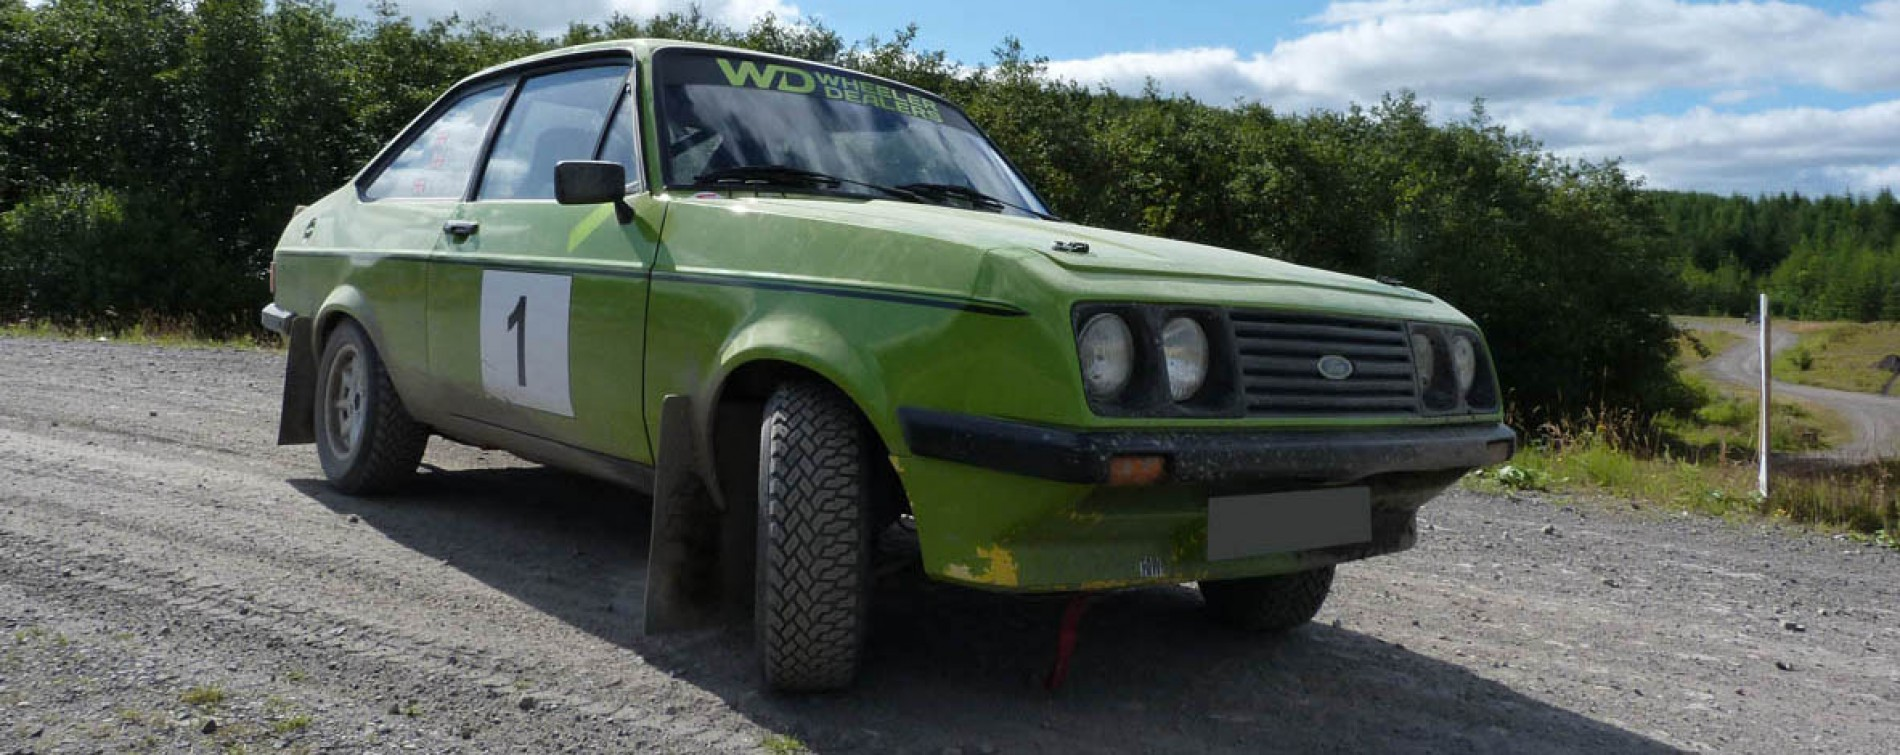 wheeler dealers ford escort rs2000 rally car